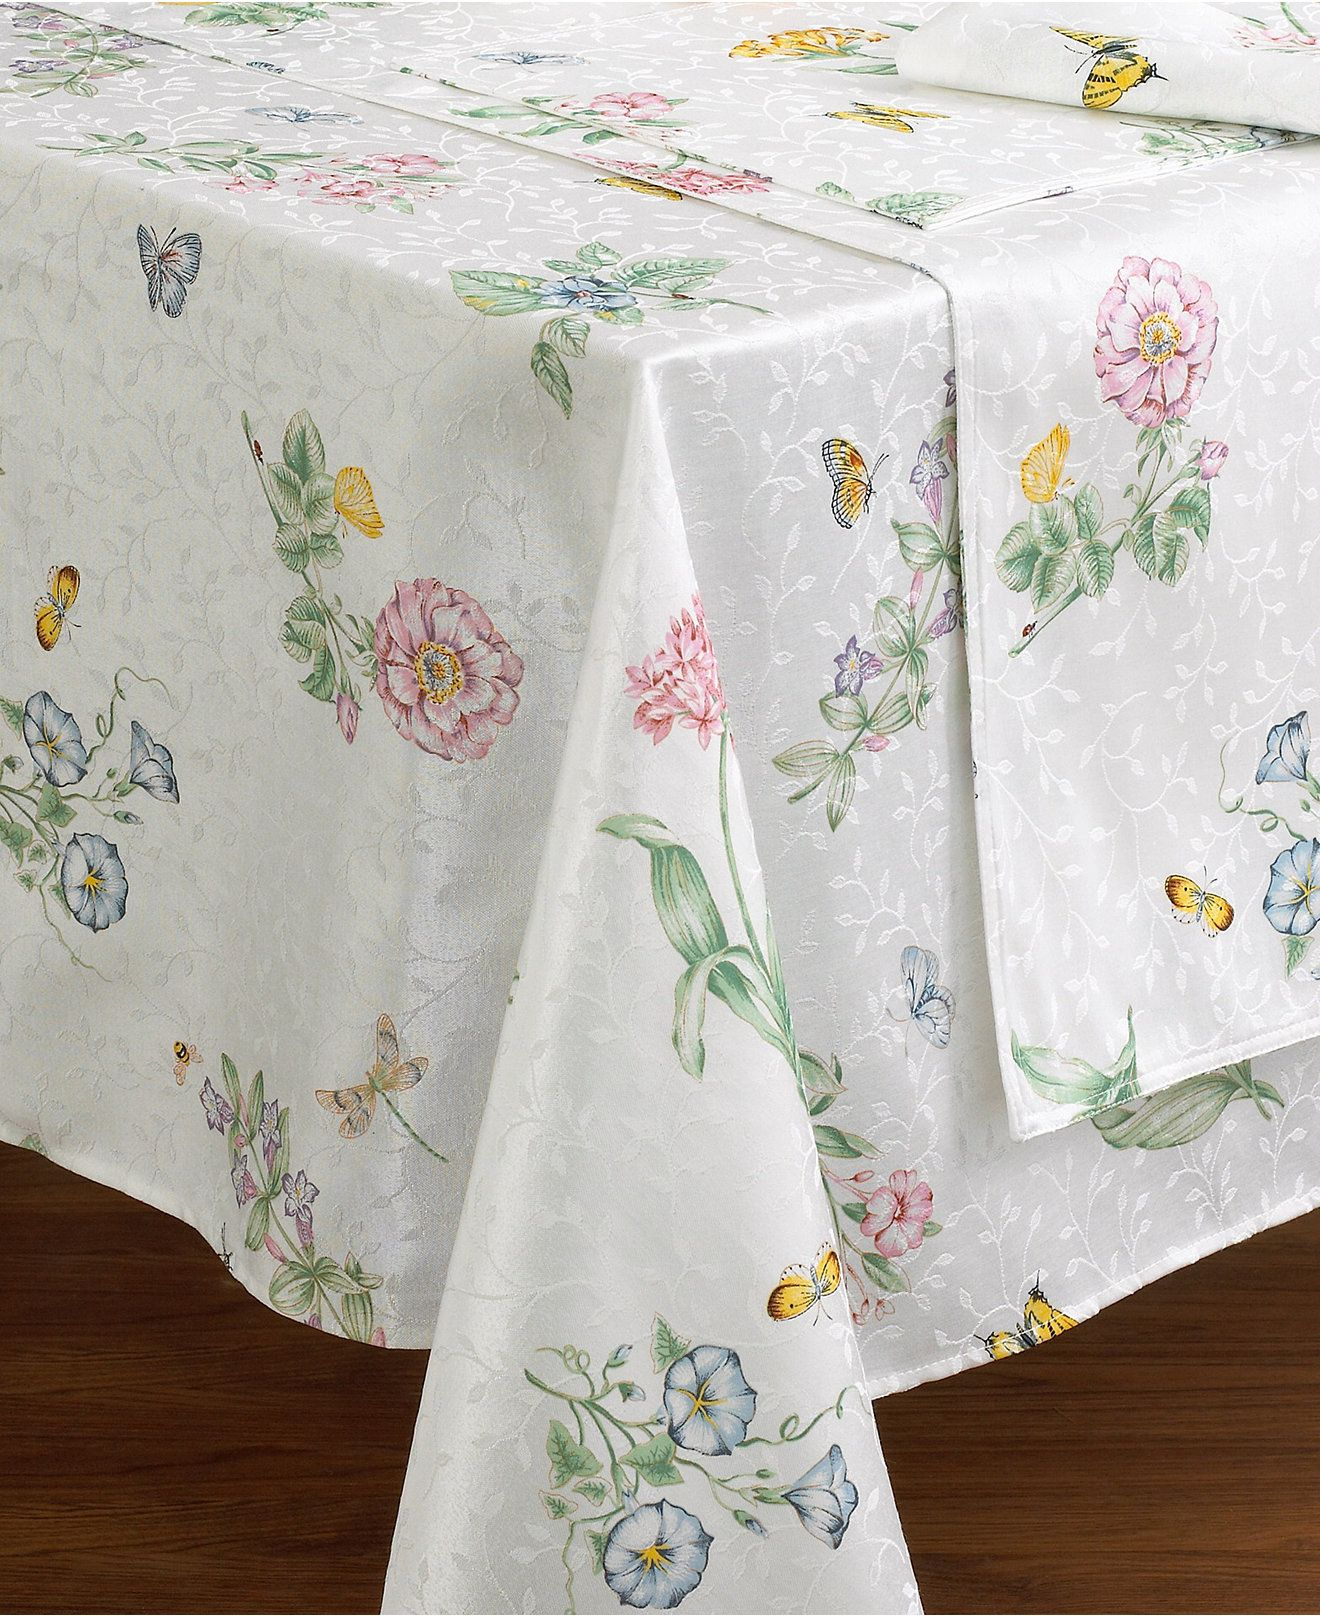 Lenox Butterfly Meadow Table Linens - Table Linens - Dining & Entertaining - Macy's $5.99